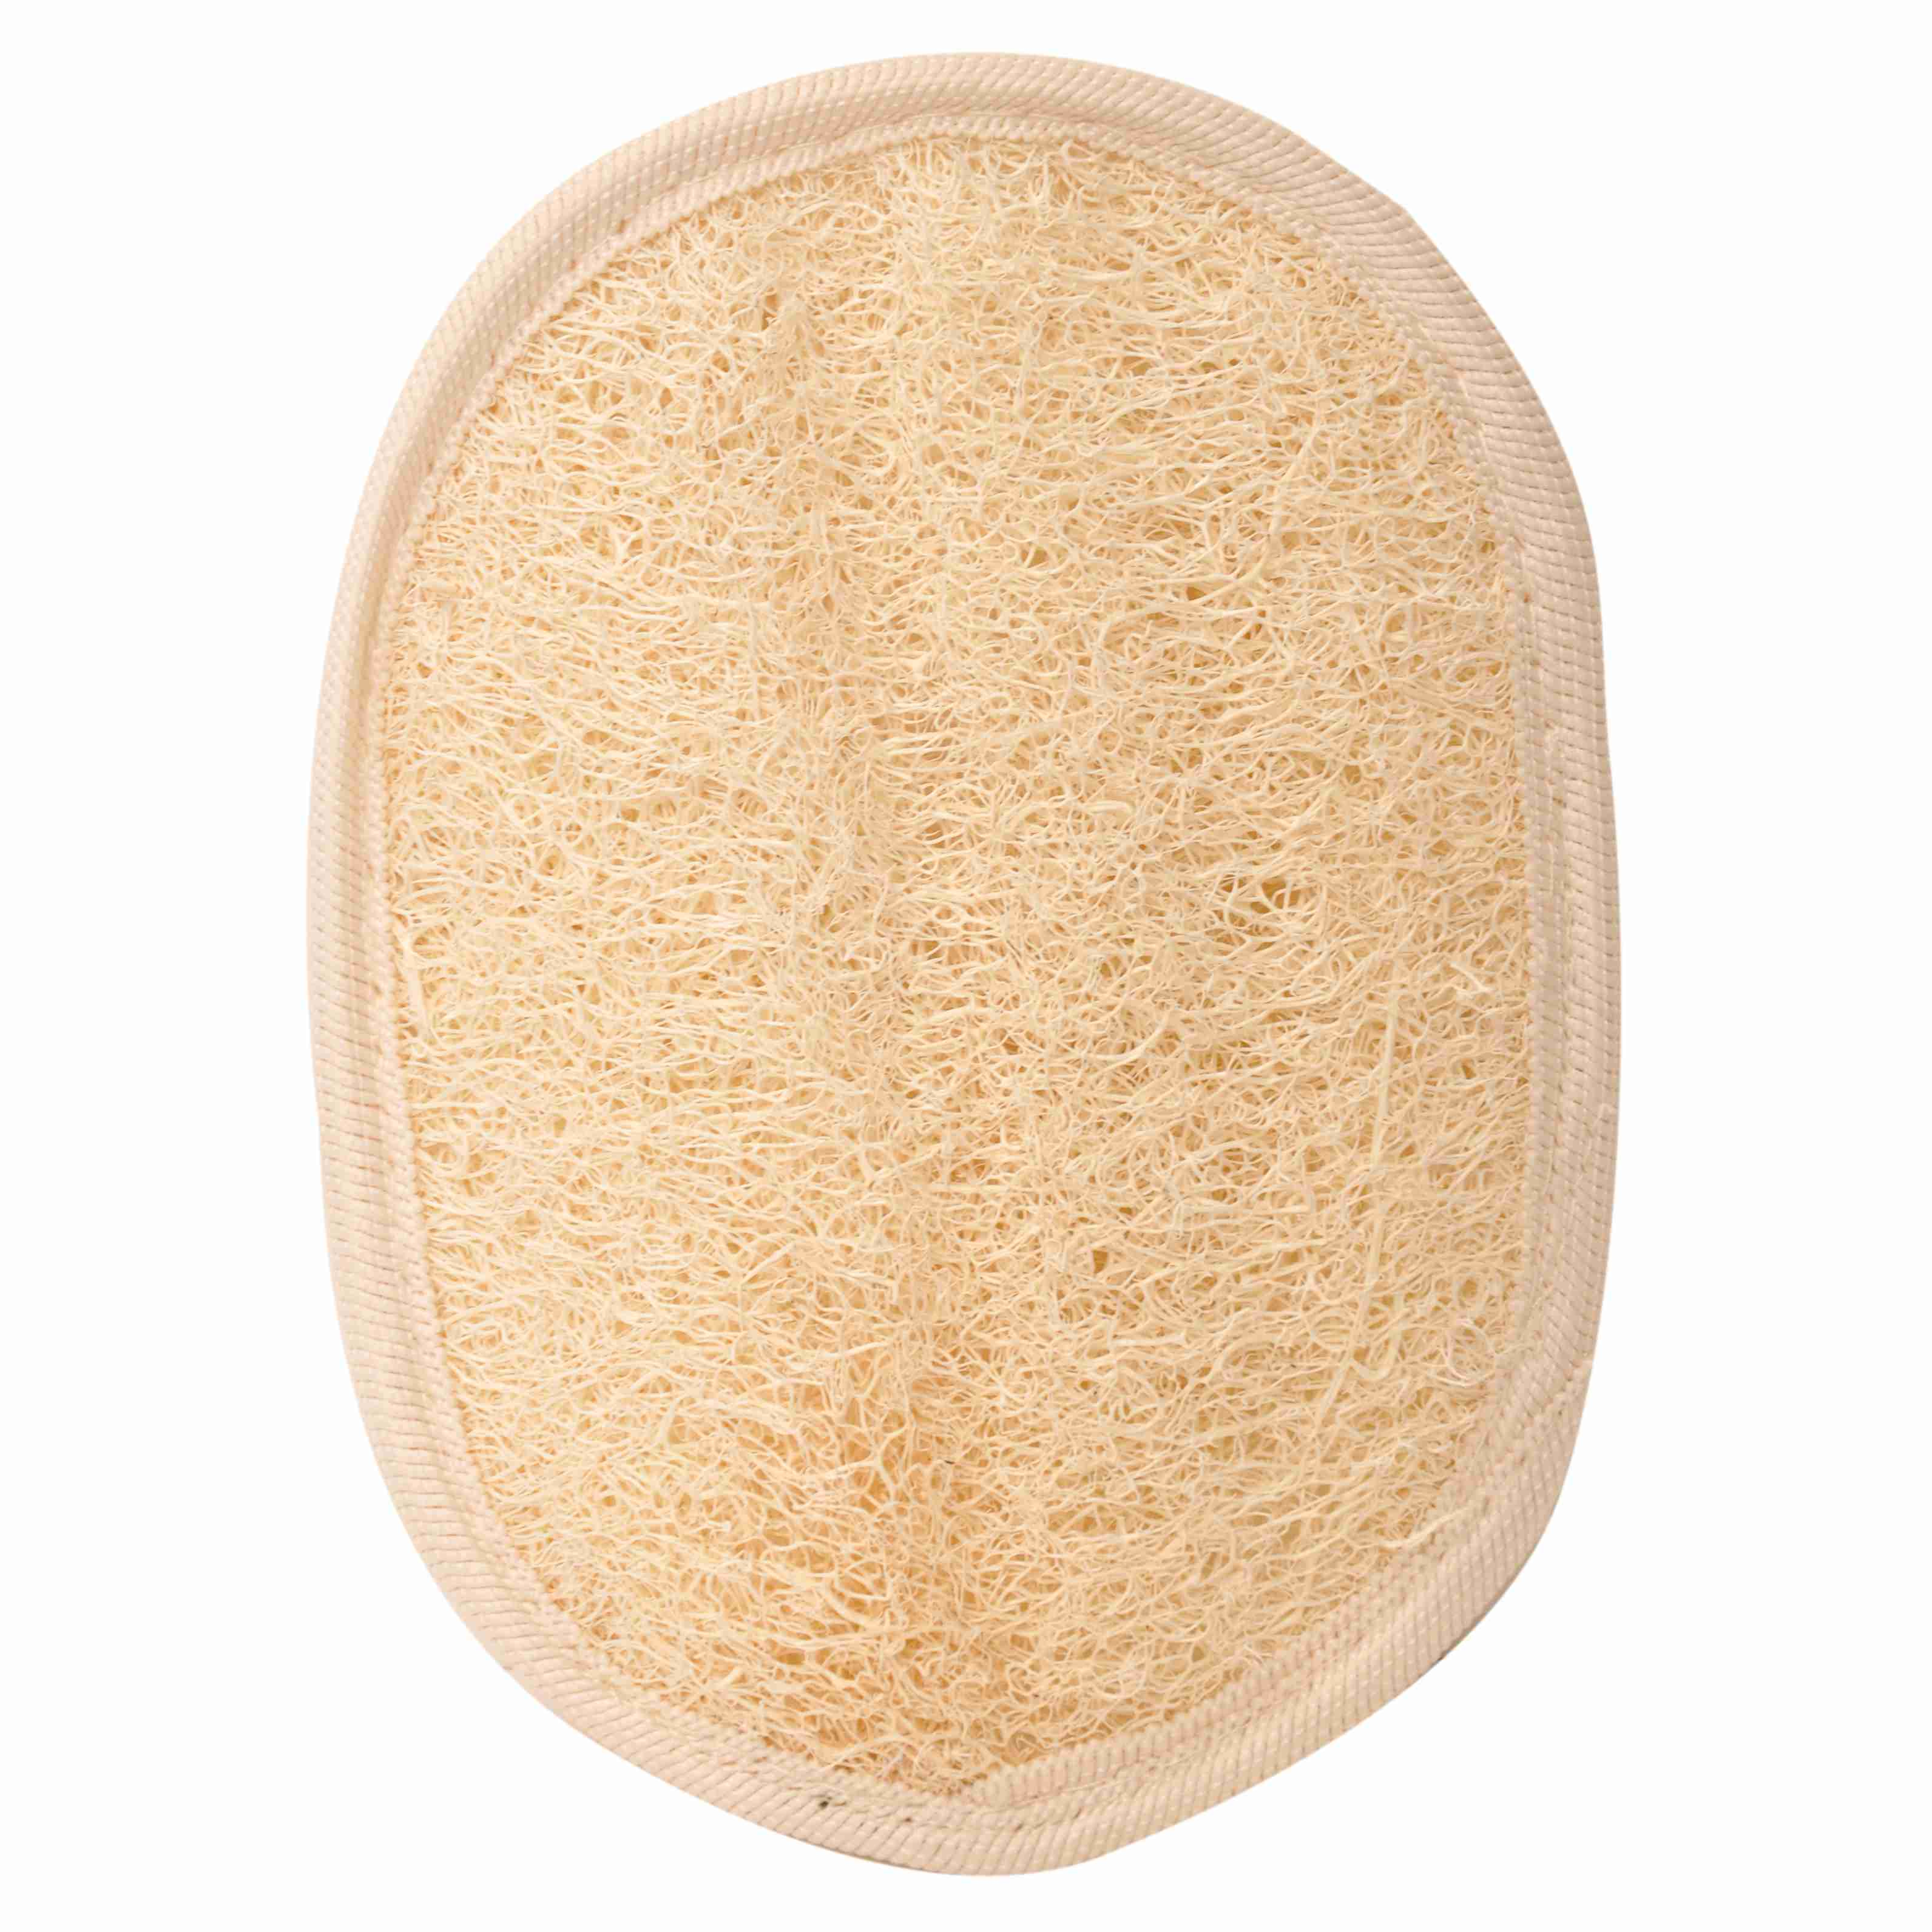 exfoliating-natural-loofah-body-scrubber for cheap